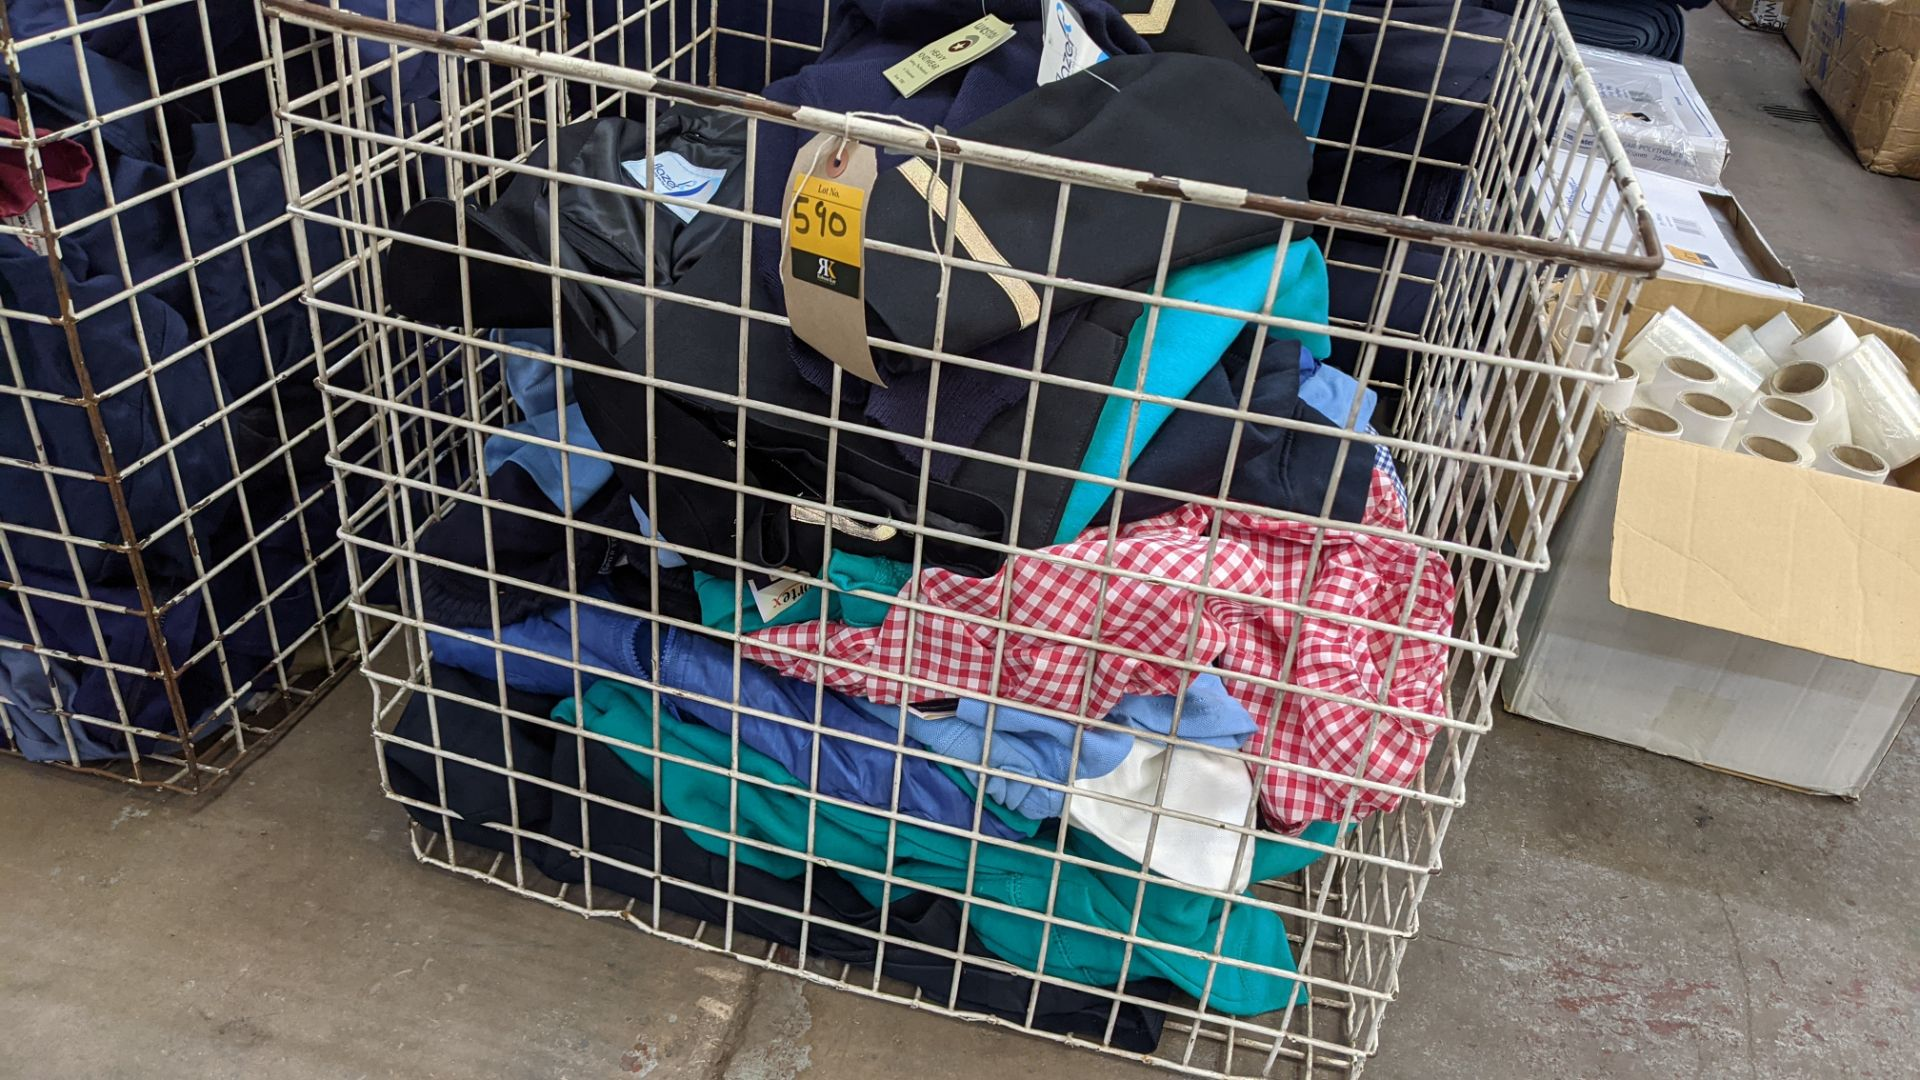 The contents of a cage of children's clothing, sweatshirts, t-shirts & more - Image 4 of 7